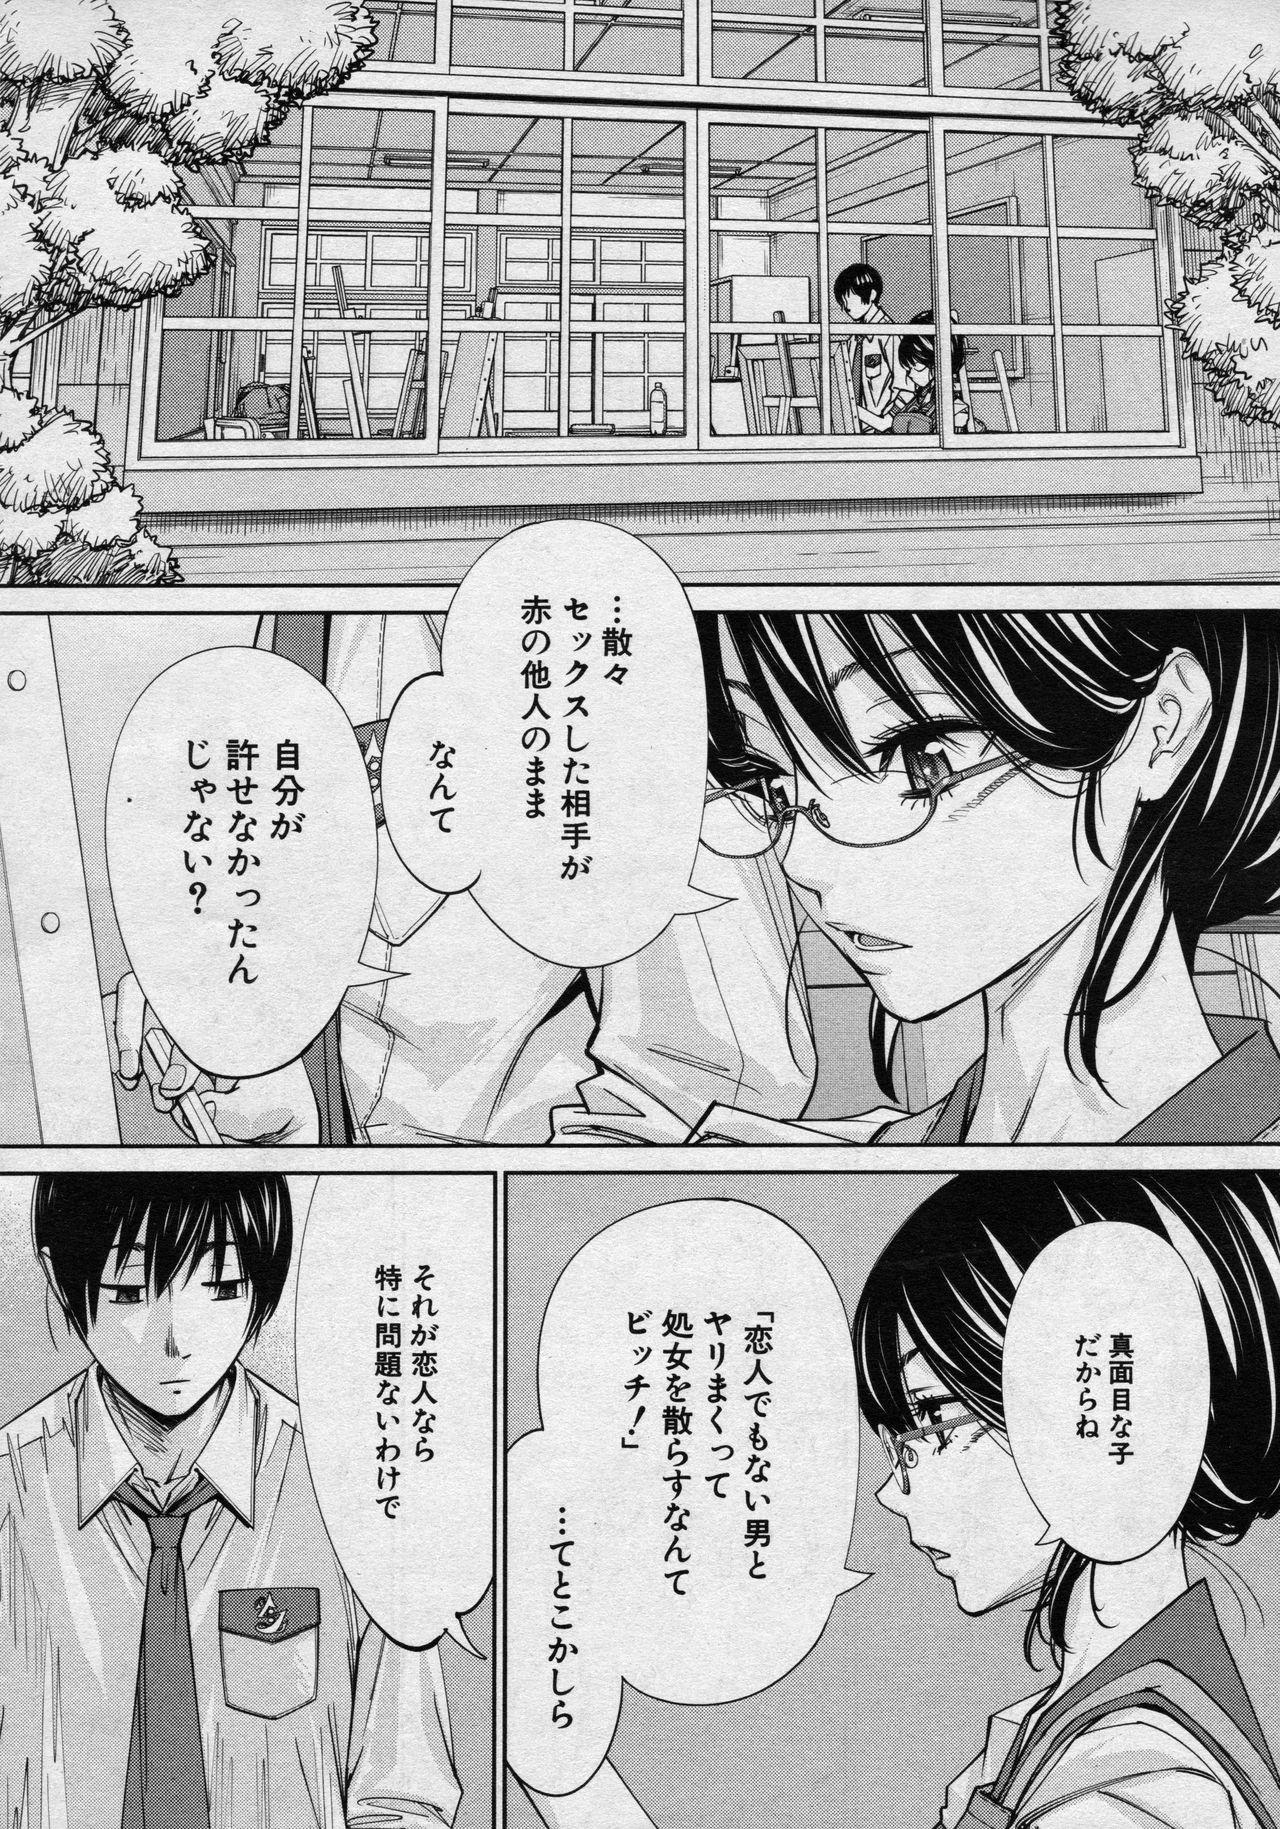 Chitose Ch. 4 11